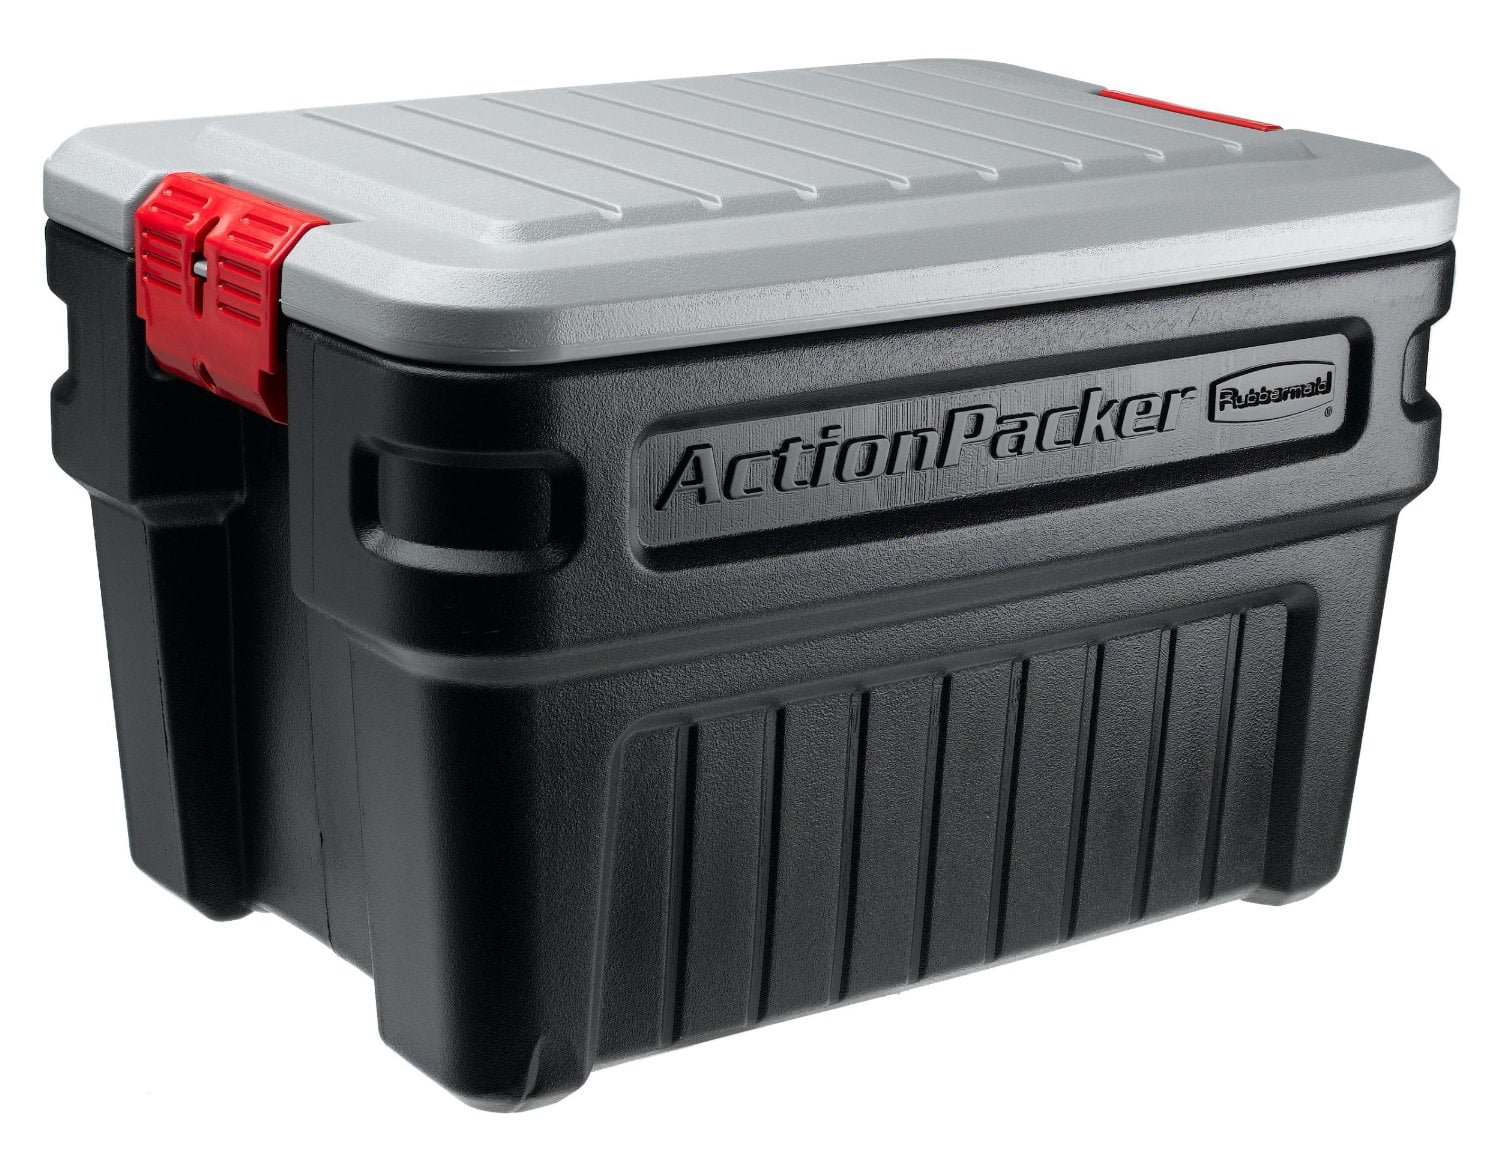 Exceptional Rubbermaid FG11720238 24 Gallon ActionPackerᅡᆴ Storage Container    Walmart.com